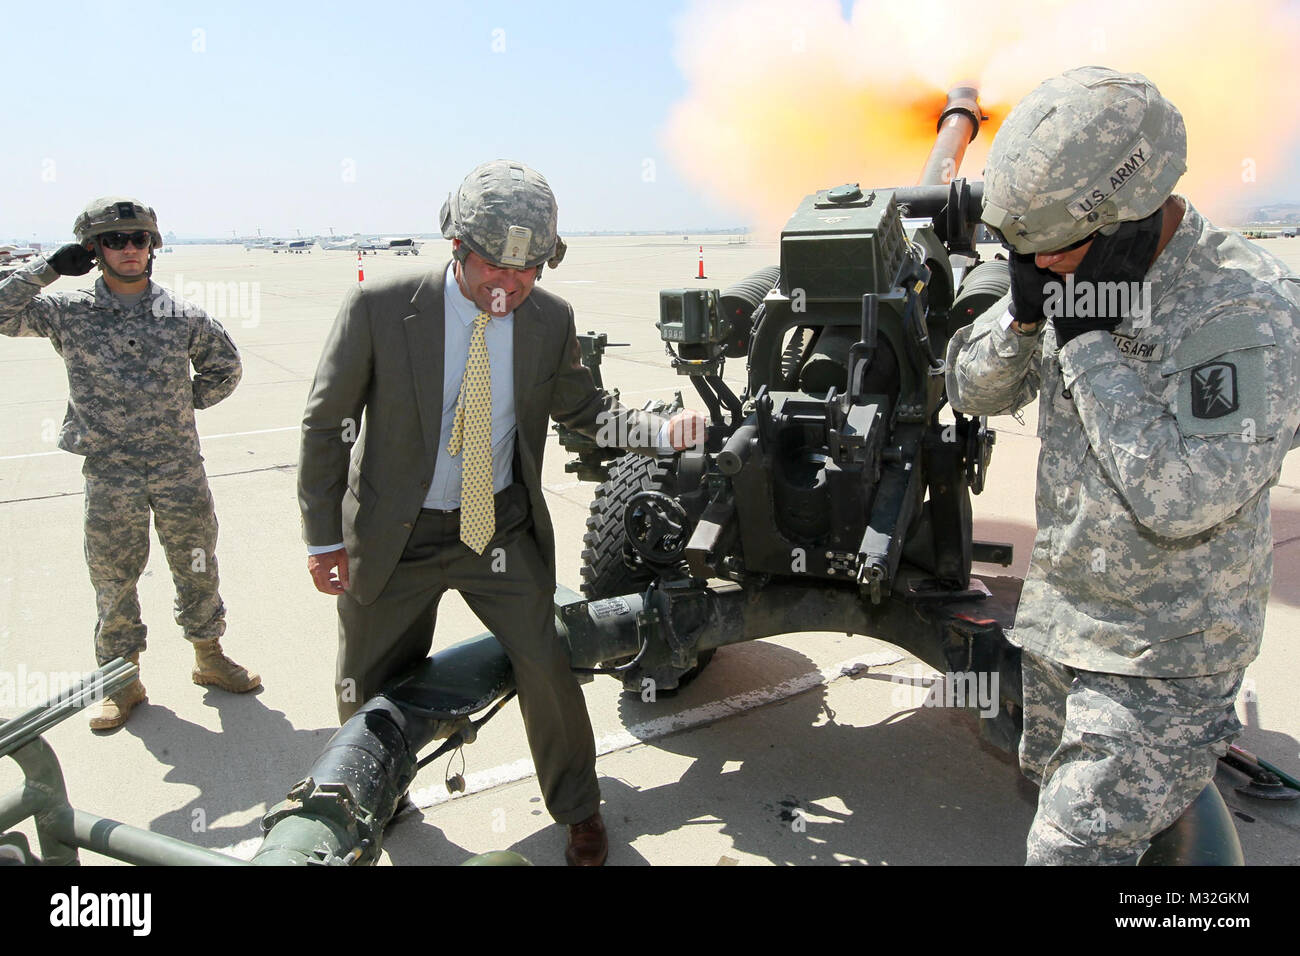 150811-N-HW977-569 MARCH AIR RESERVE BASE, Calif. (Aug. 11, 2015) Rusty Bailey, mayor of Riverside, fires a howitzer - Stock Image